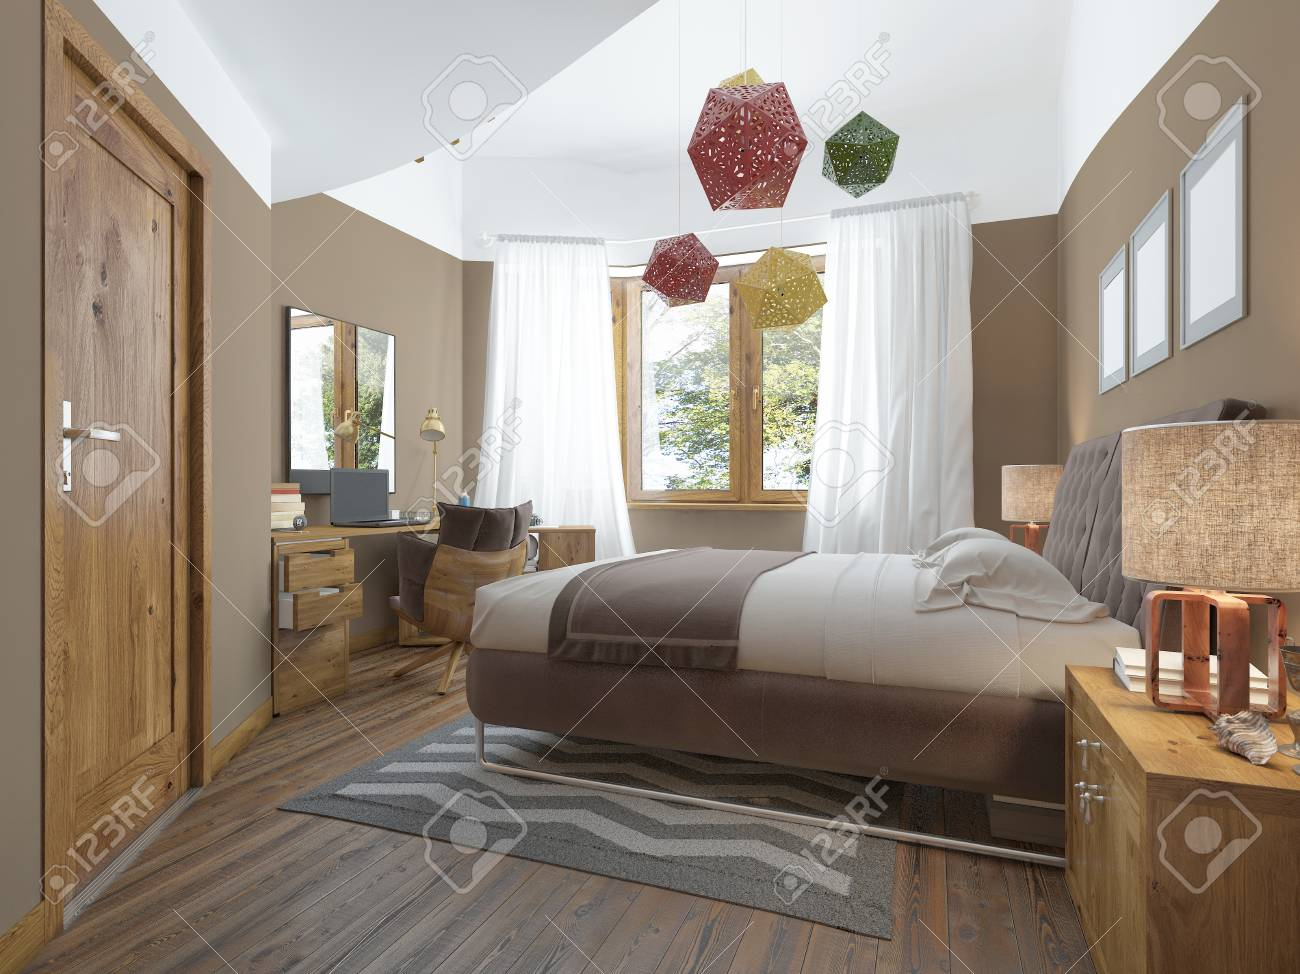 Modern Bedroom In The Style Of Contemporary Bedside Tables With Stock Photo Picture And Royalty Free Image Image 60564570